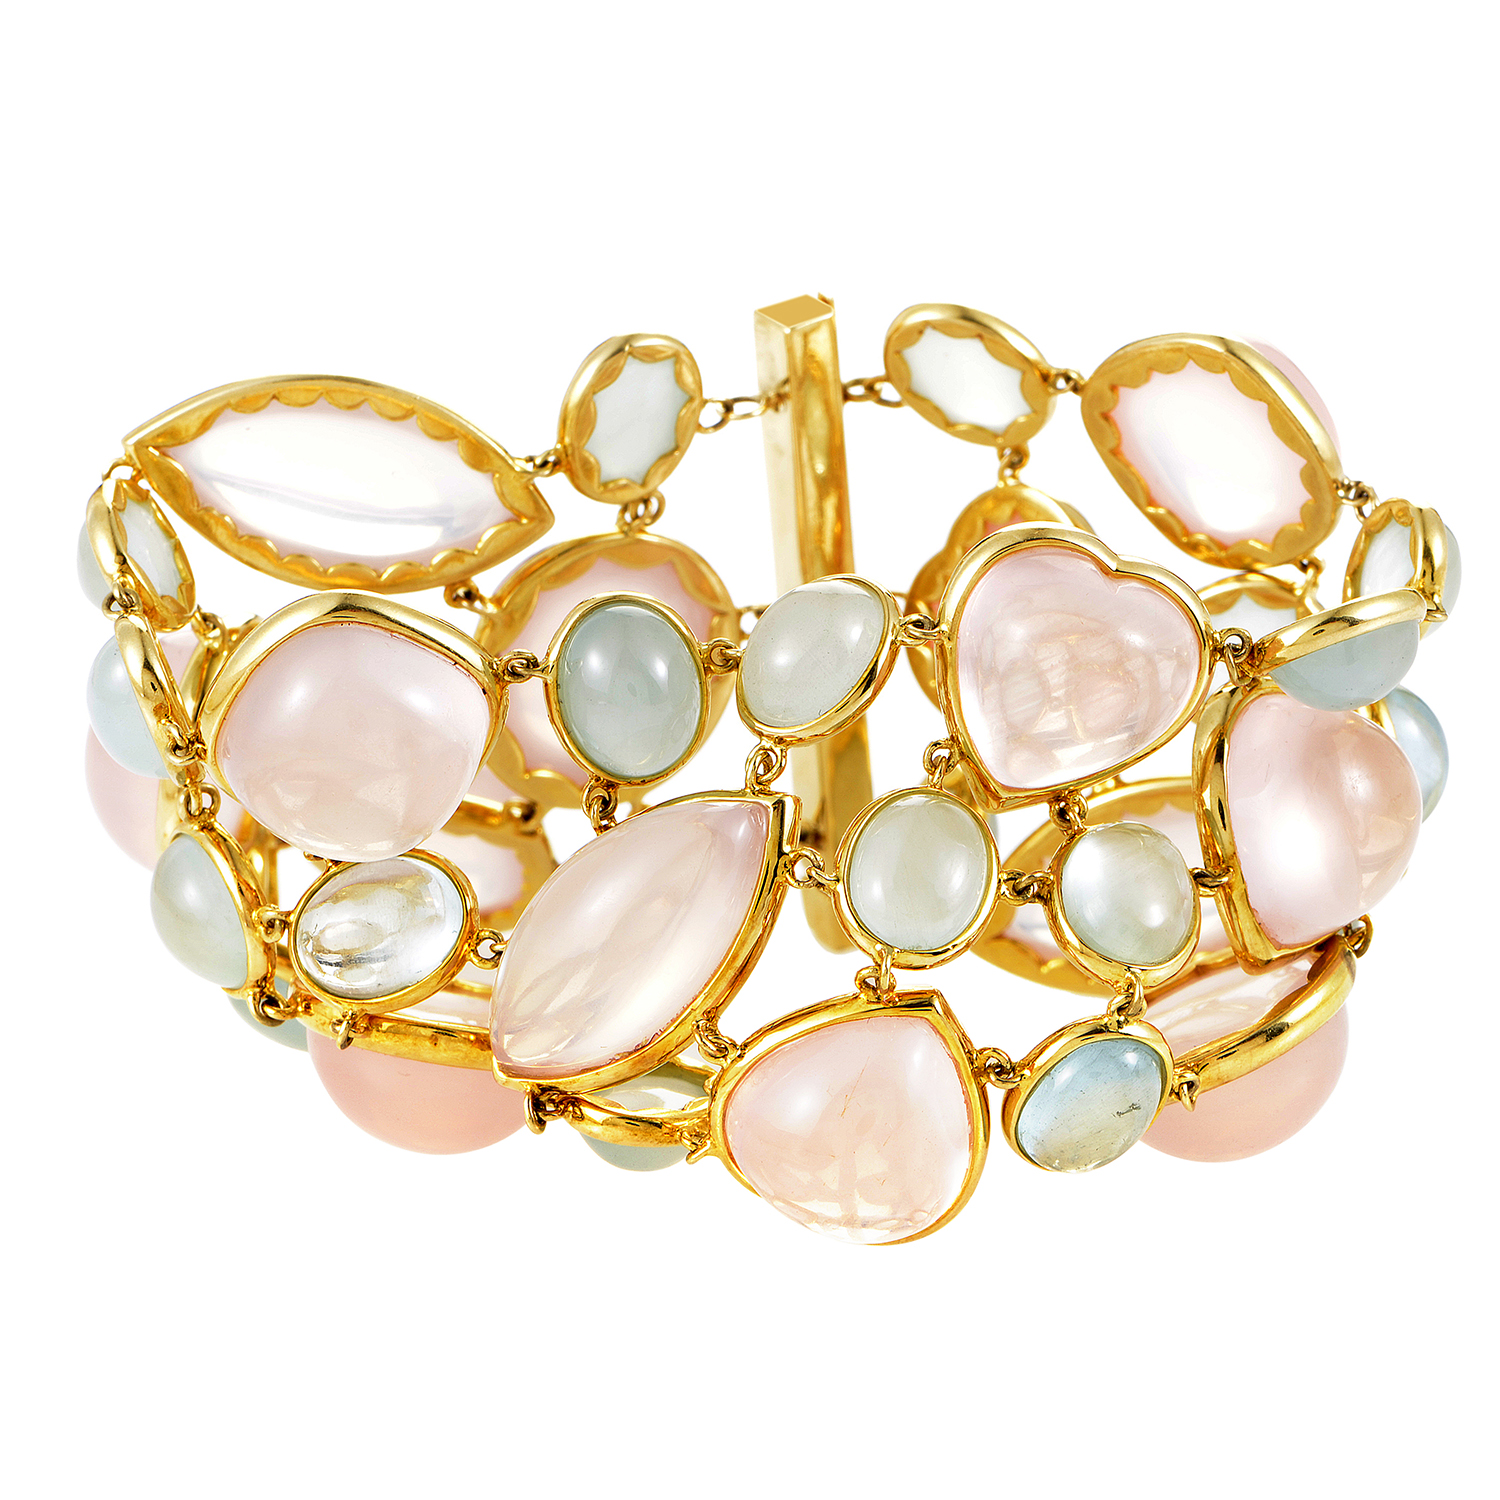 Women's 18K Yellow Gold Rose Quartz & Blue Tourmaline Bracelet